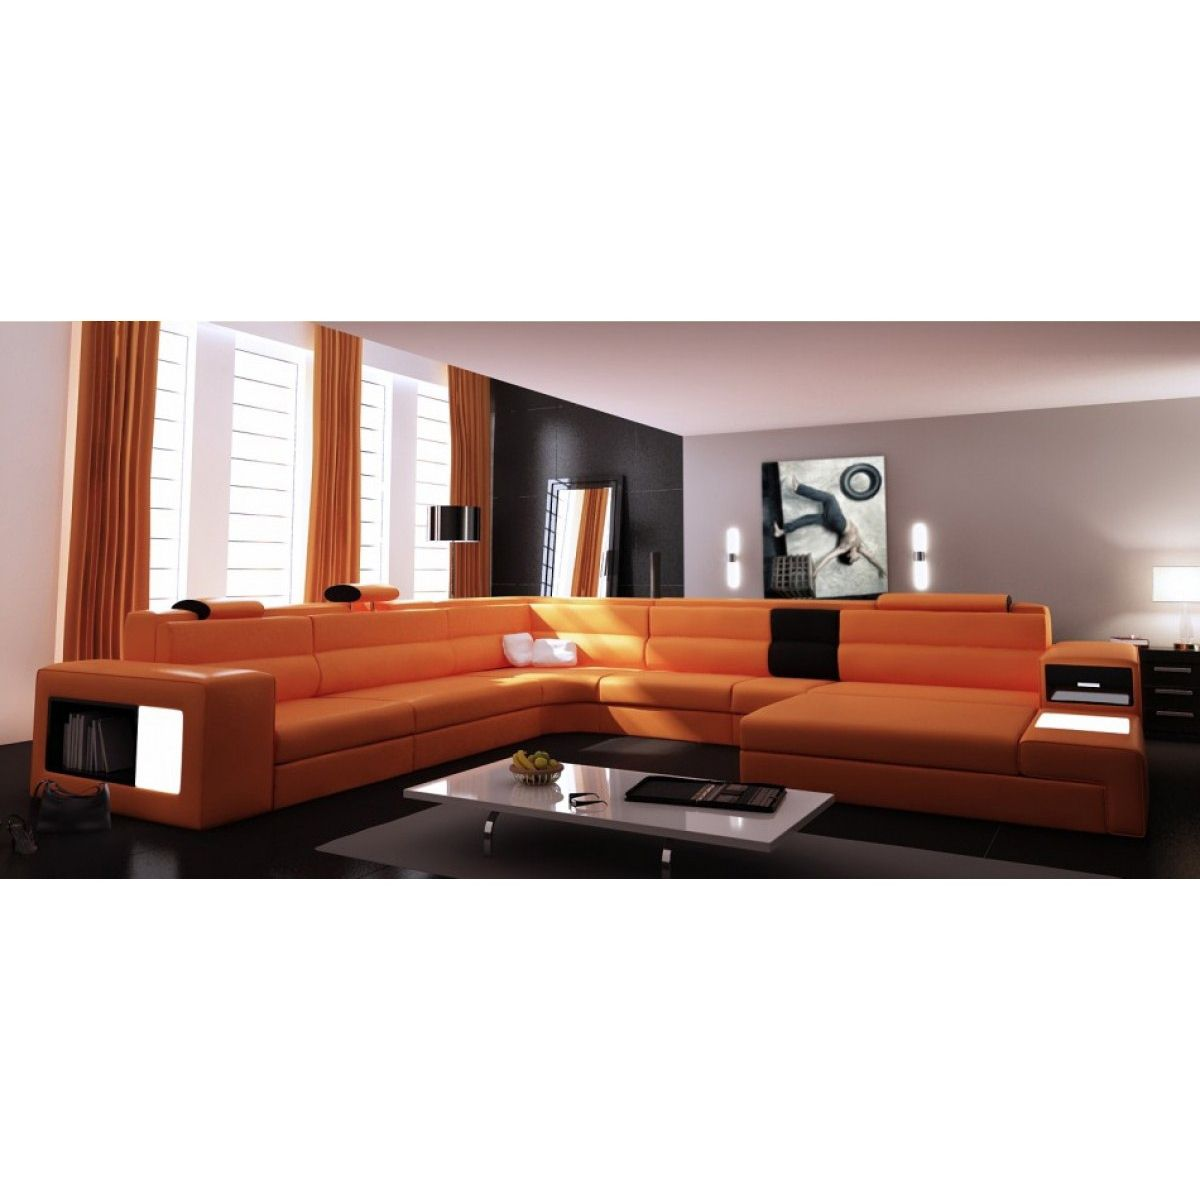 deco in paris canape panoramique orange angle droit venise can pano angledroit pu venise orange. Black Bedroom Furniture Sets. Home Design Ideas